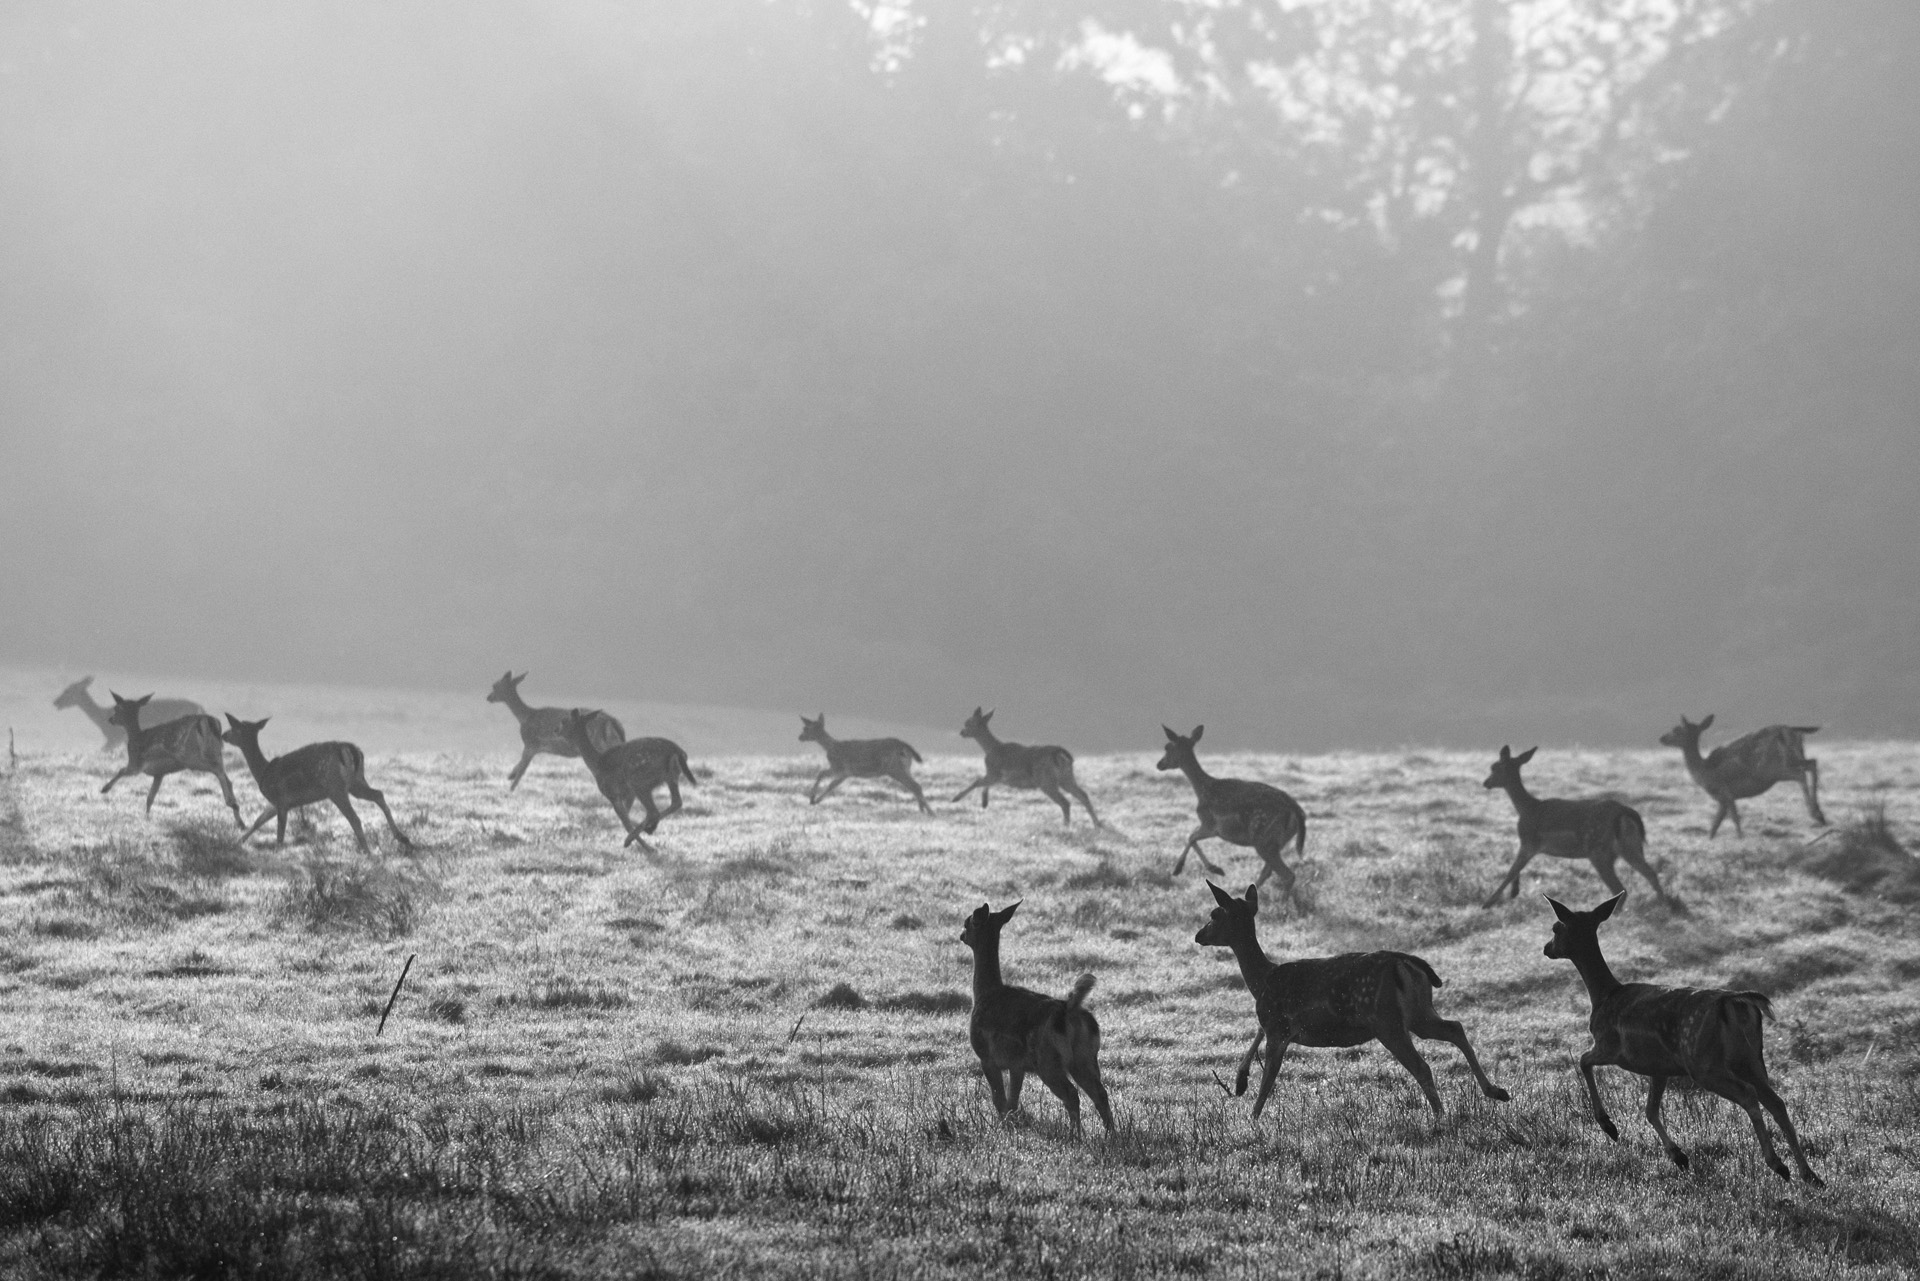 Fallow deer on the move across pasture at dawn, Ashdown Forest, Sussex, England